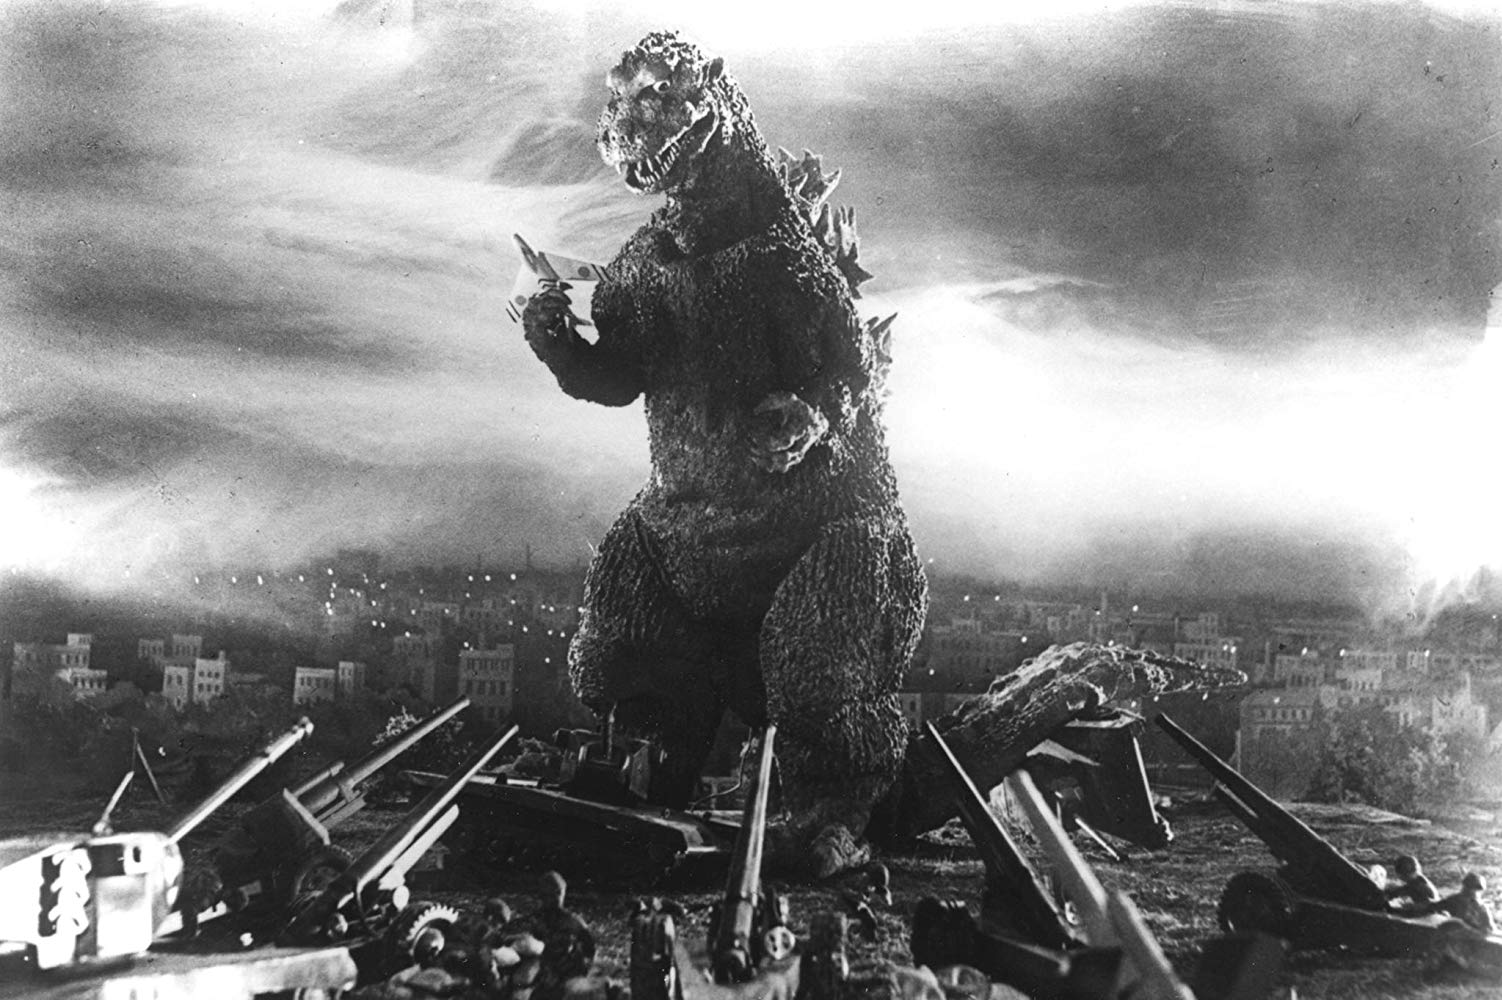 The military attempt to stop Godzilla in Godzilla, King of the Monsters (1954)